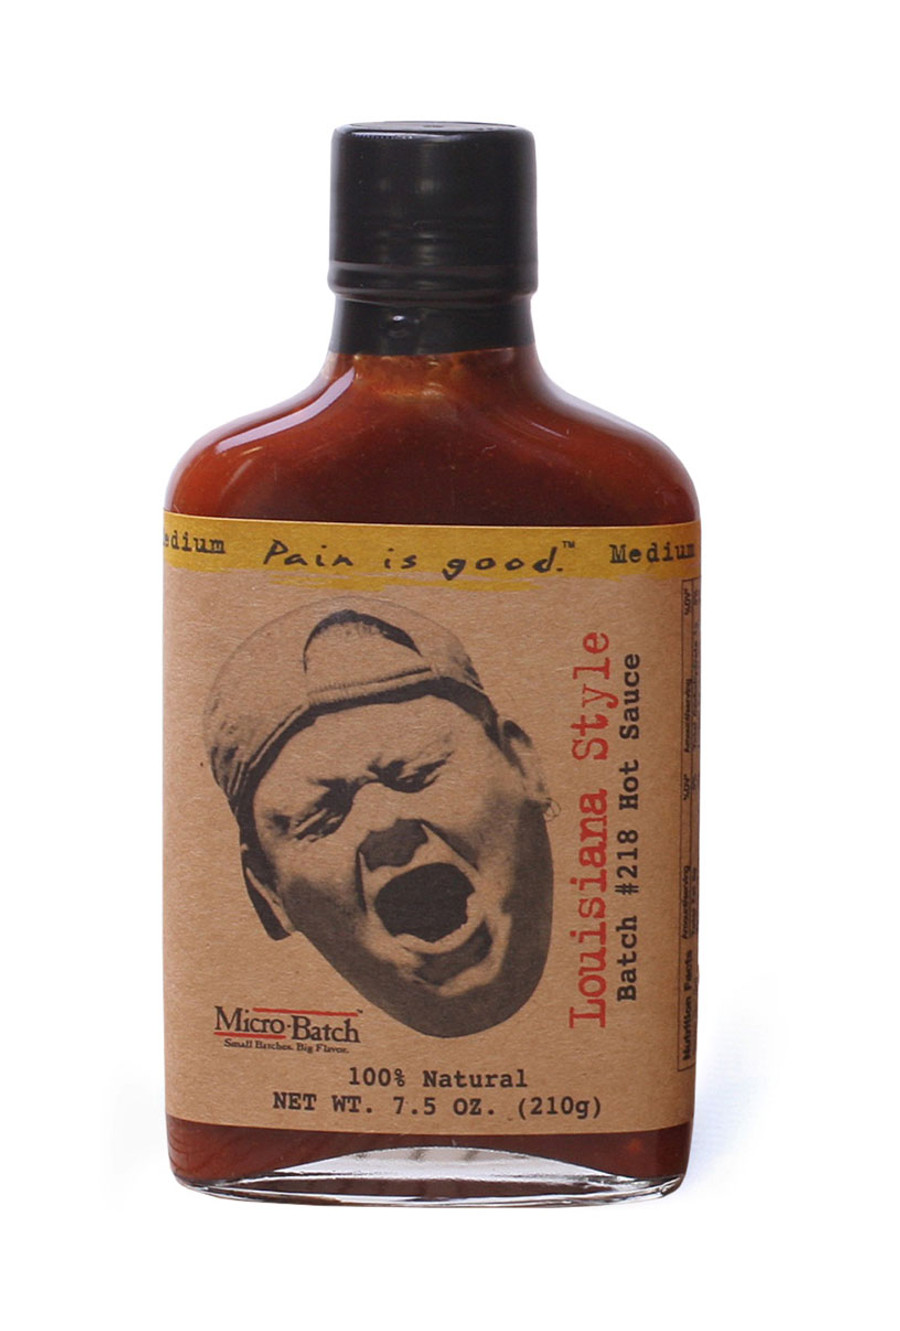 is Good Louisiana Style Hot Sauce as seen on Hot Ones and sold by Pepper Explosion